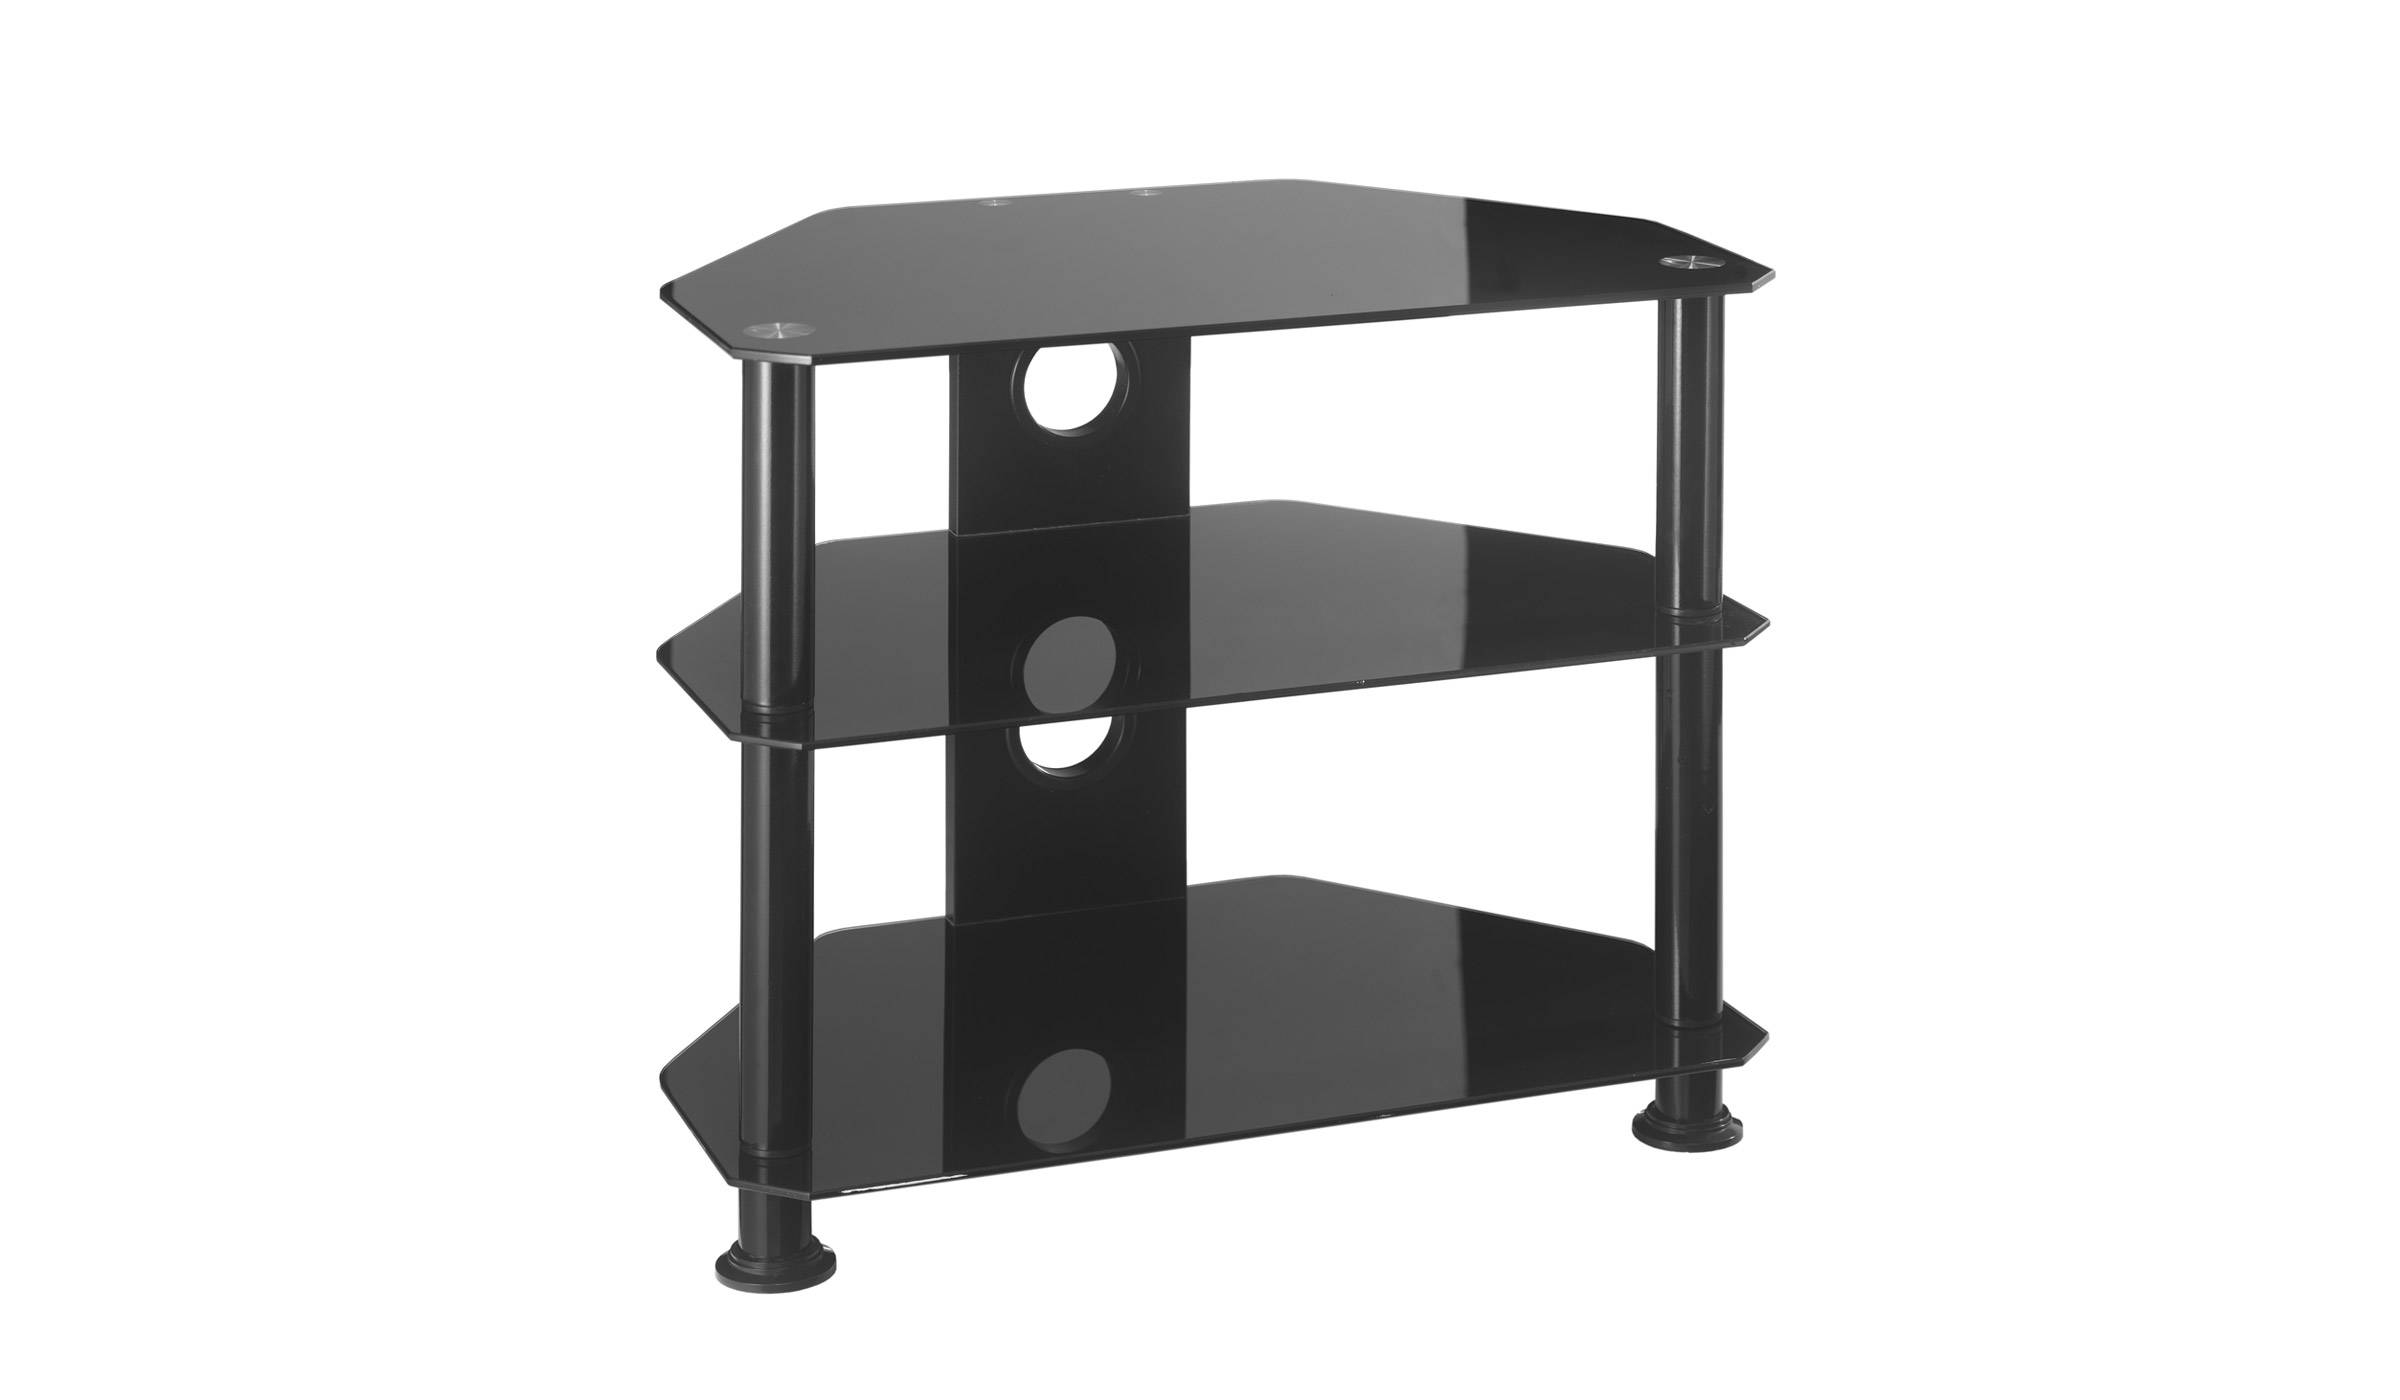 Small Glass Corner Tv Stand Up To 26 Inch Tv | Mmt-Db600 throughout 24 Inch Corner Tv Stands (Image 7 of 15)